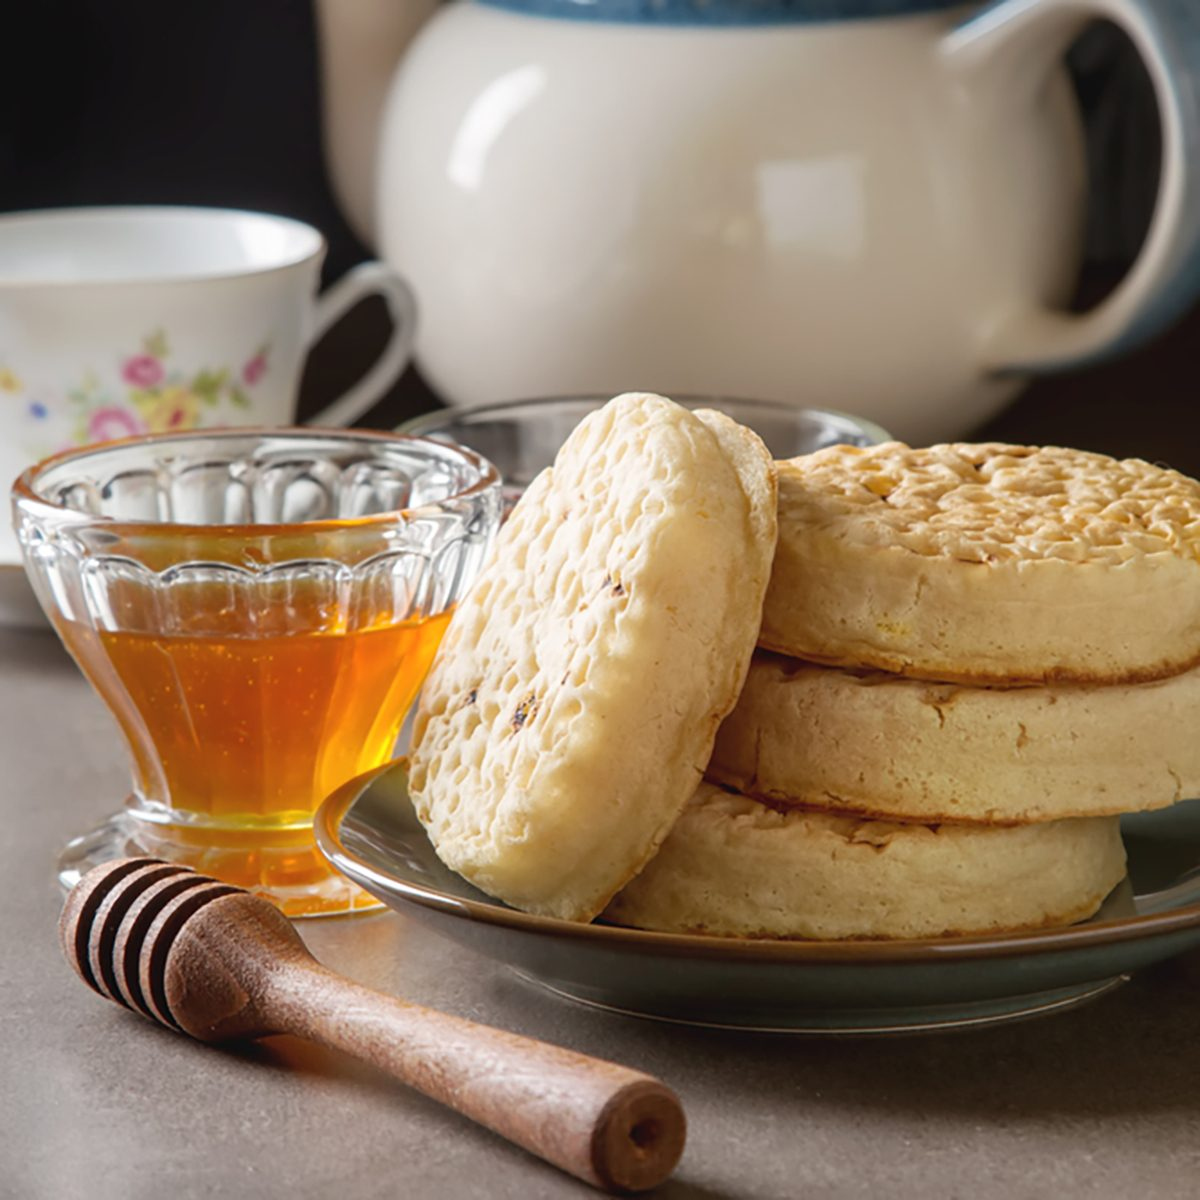 Hot Home made toasted crumpets served with honey and jams.